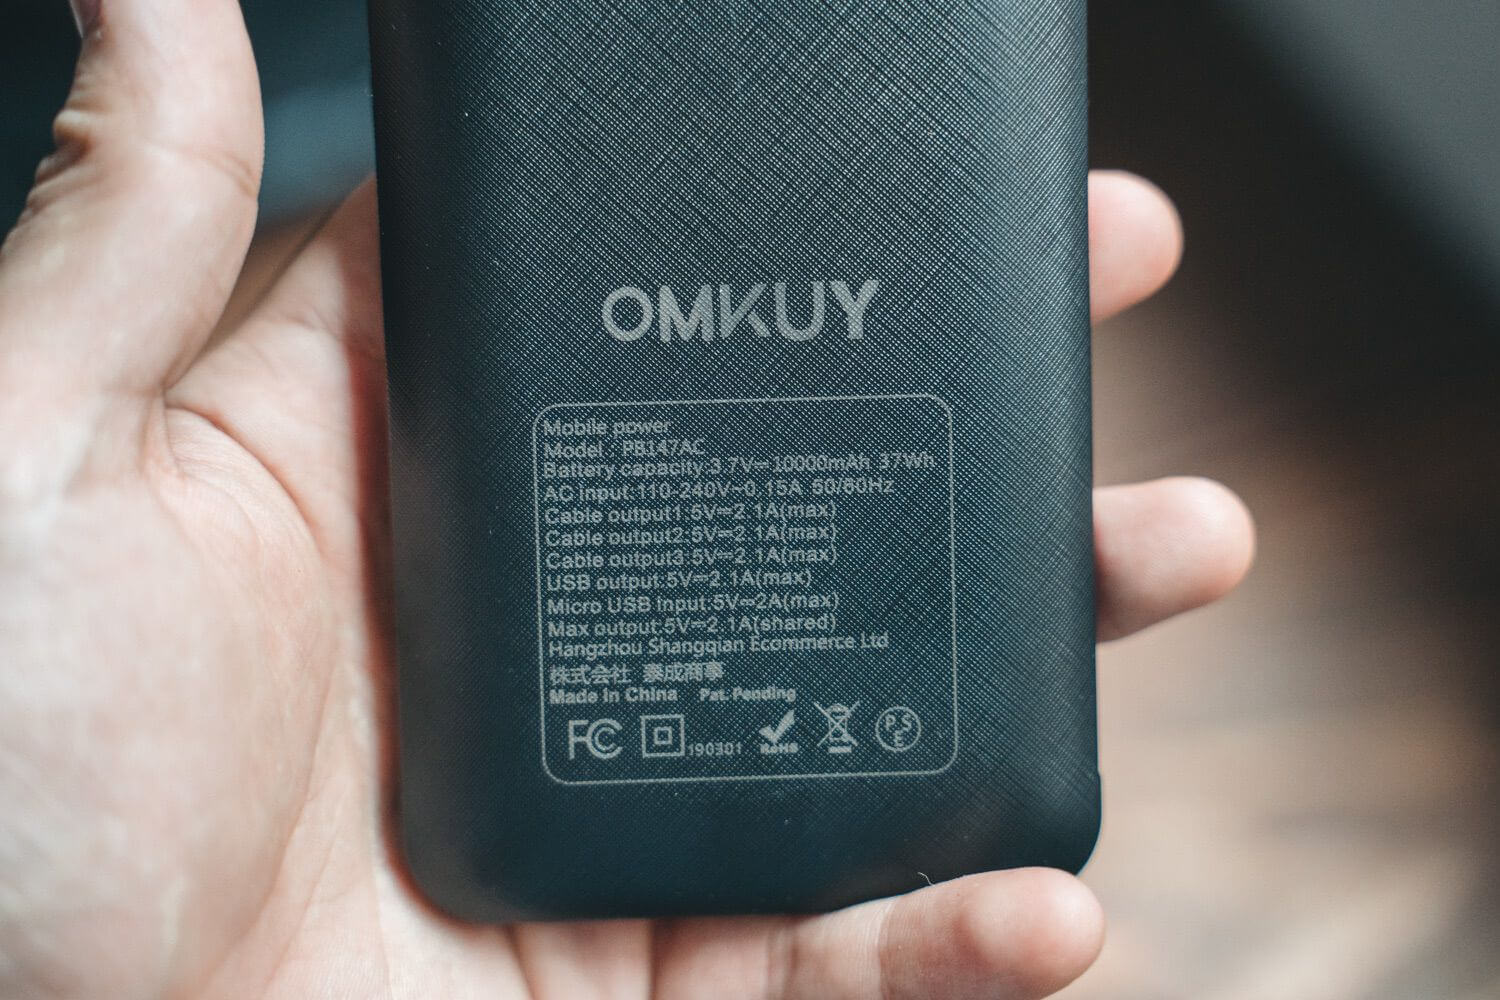 Omkuy 8